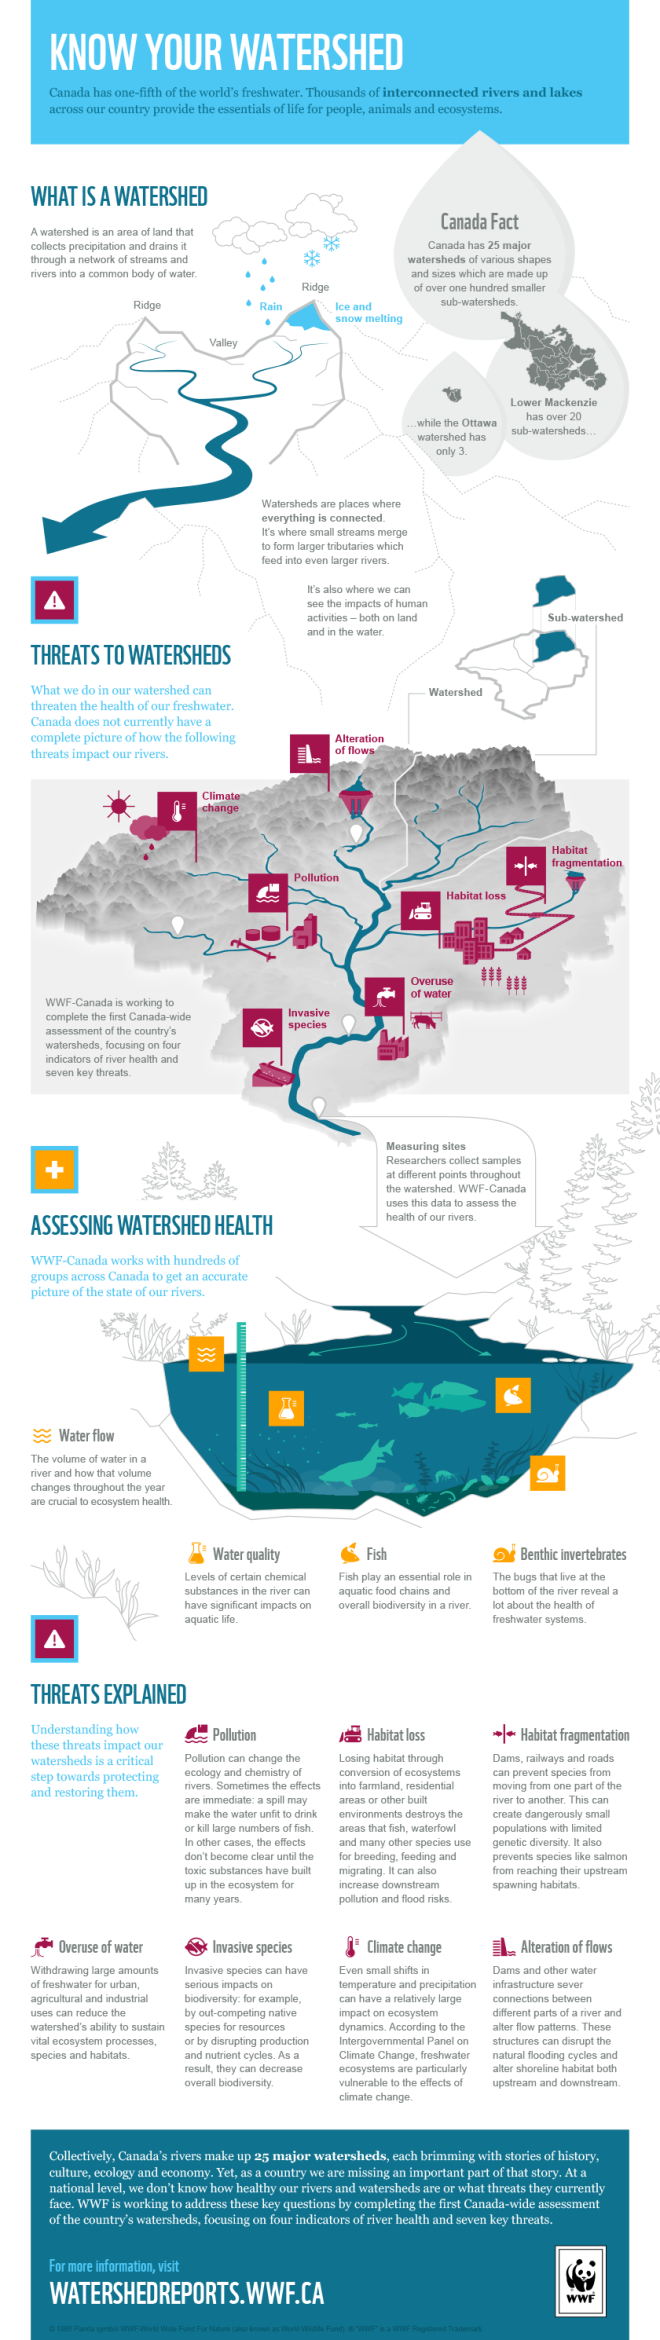 WWFCanada KnowYourWatershed Infographic